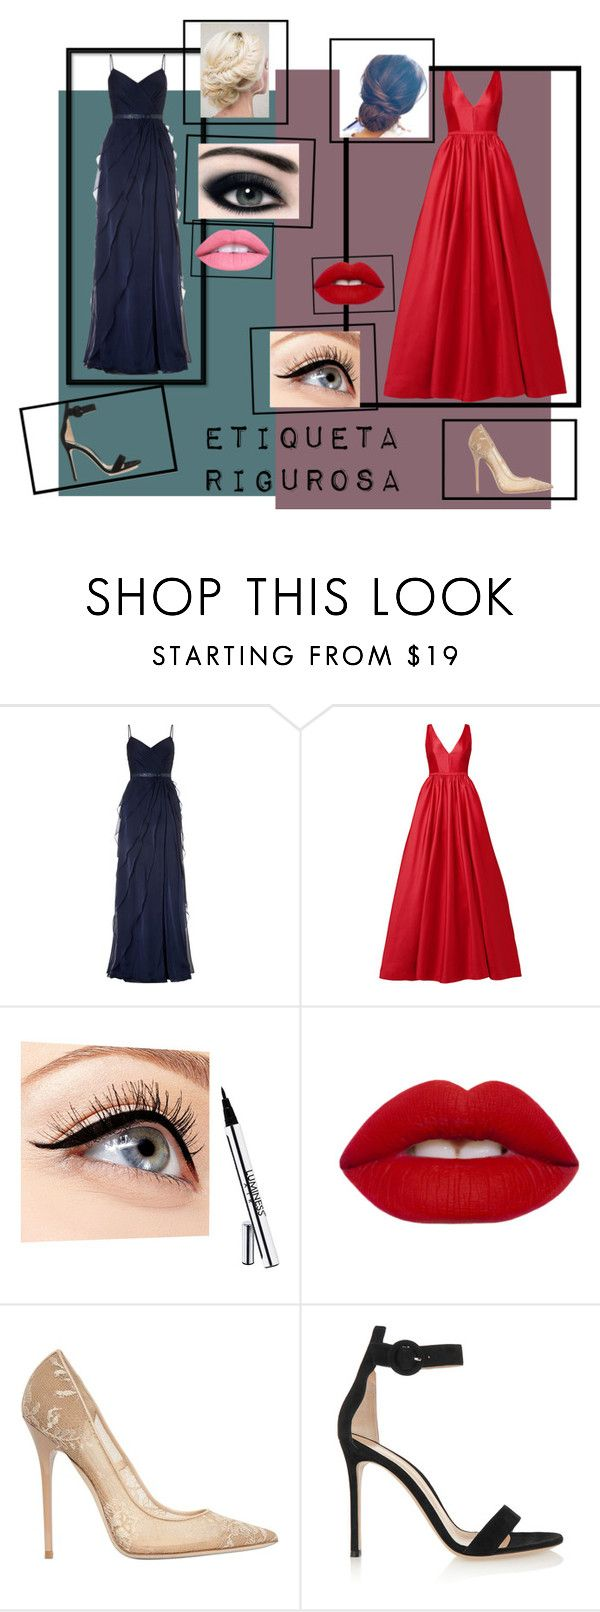 """""""ETIQUETA RIGUROSA"""" by elina-valerga on Polyvore featuring moda, Adrianna Papell, ML Monique Lhuillier, Luminess Air, Lime Crime, Jimmy Choo y Gianvito Rossi"""